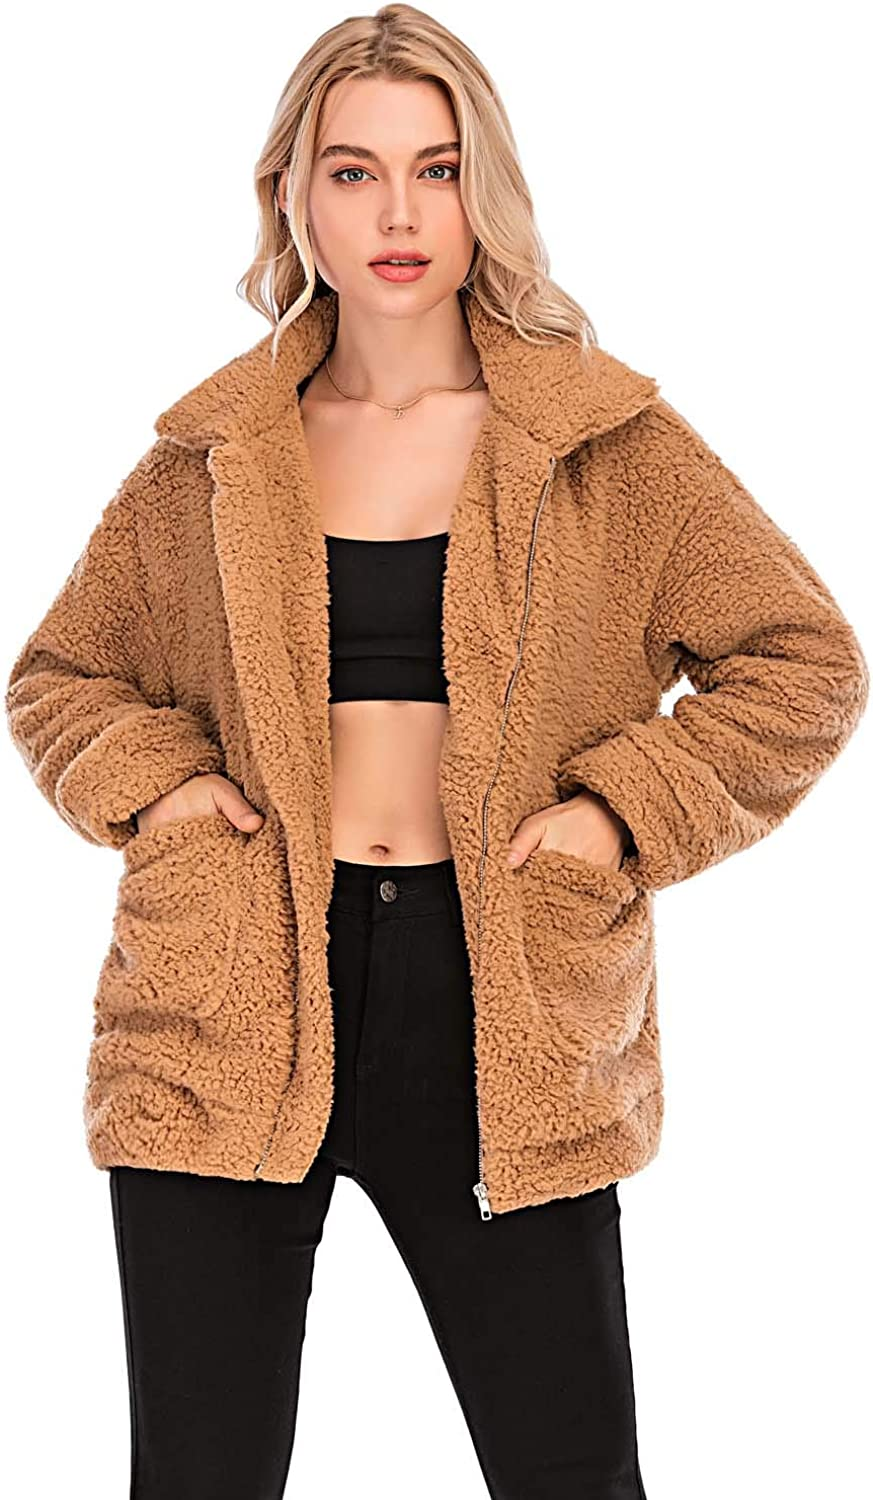 Comeon Women's Faux Fur Jacket Shaggy Jacket Winter Fleece Coat Outwear Shaggy Shearling Jacket at  Women's Coats Shop